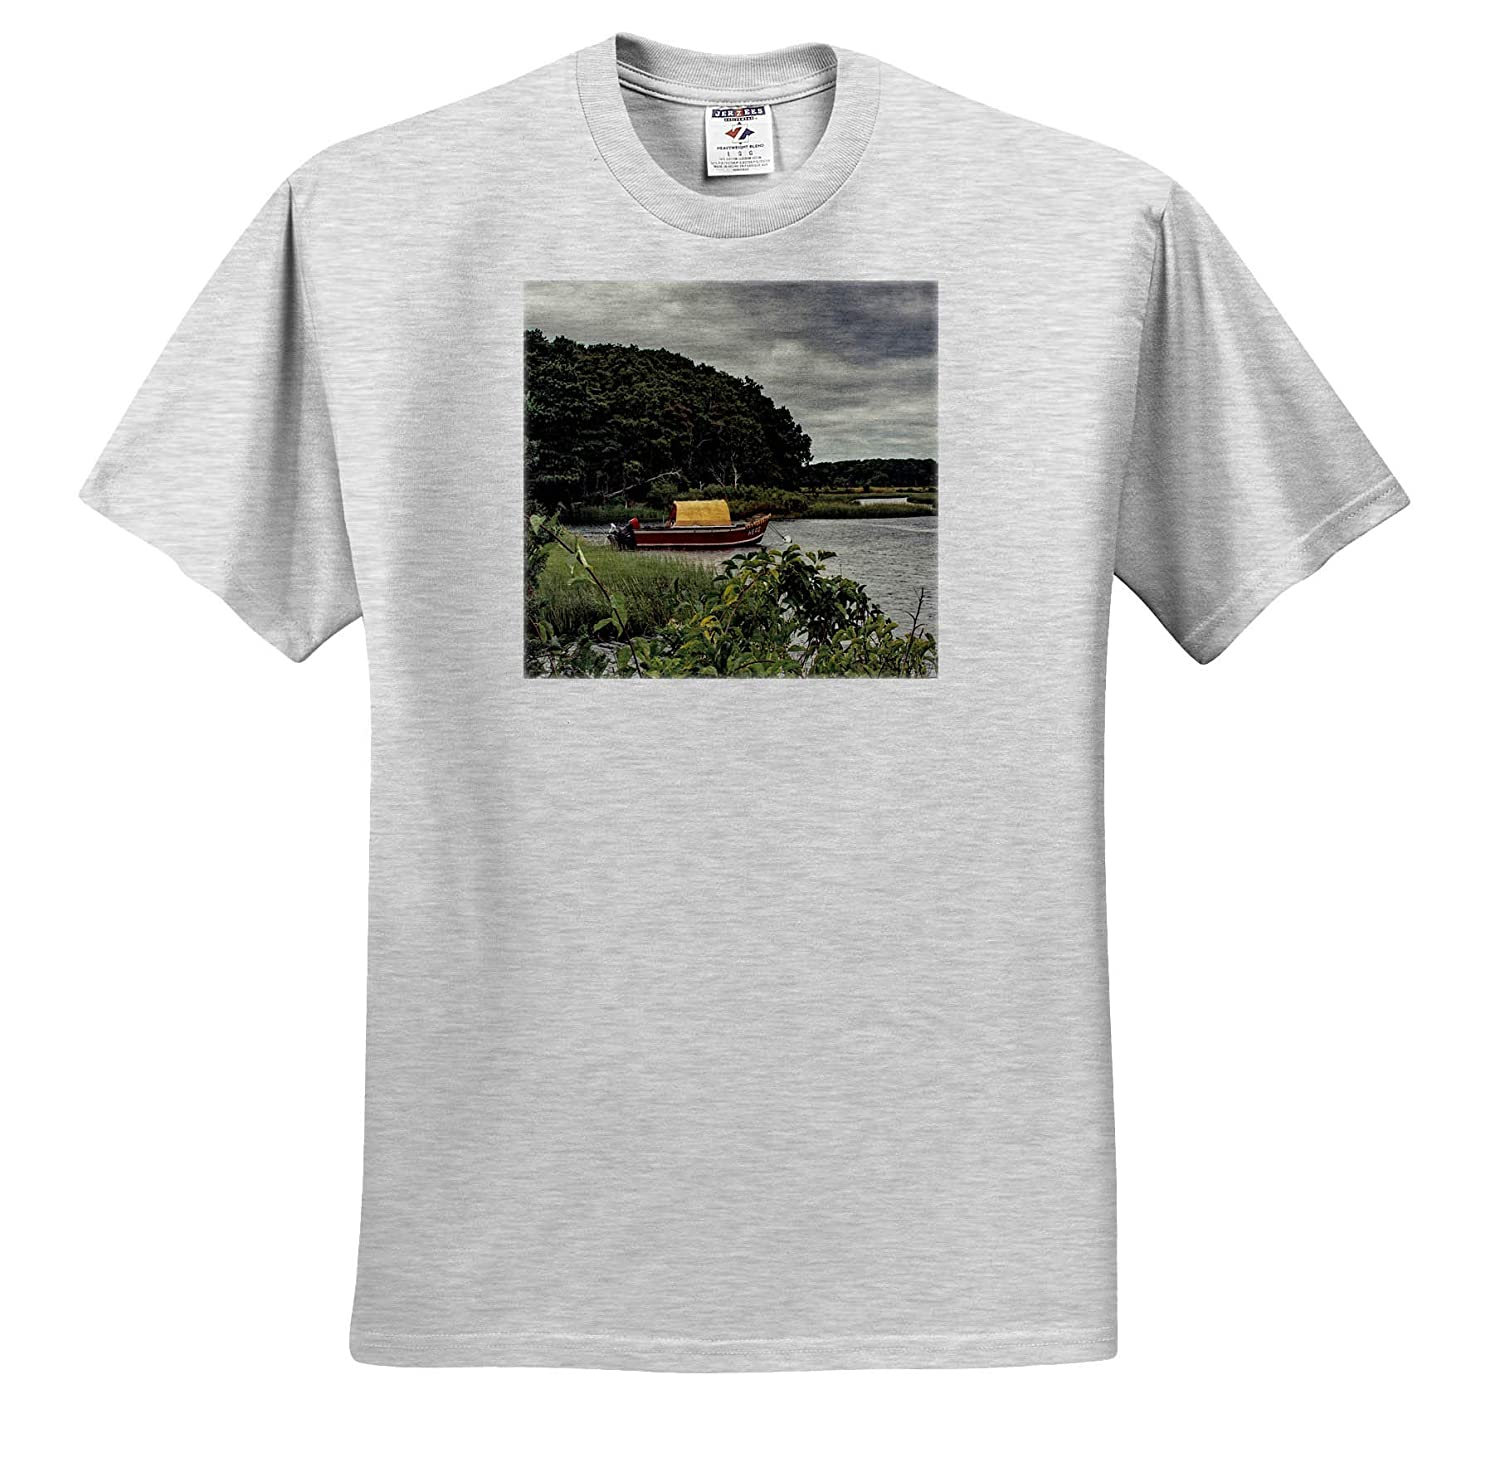 3dRose Roni Chastain Photography Red Boat T-Shirts